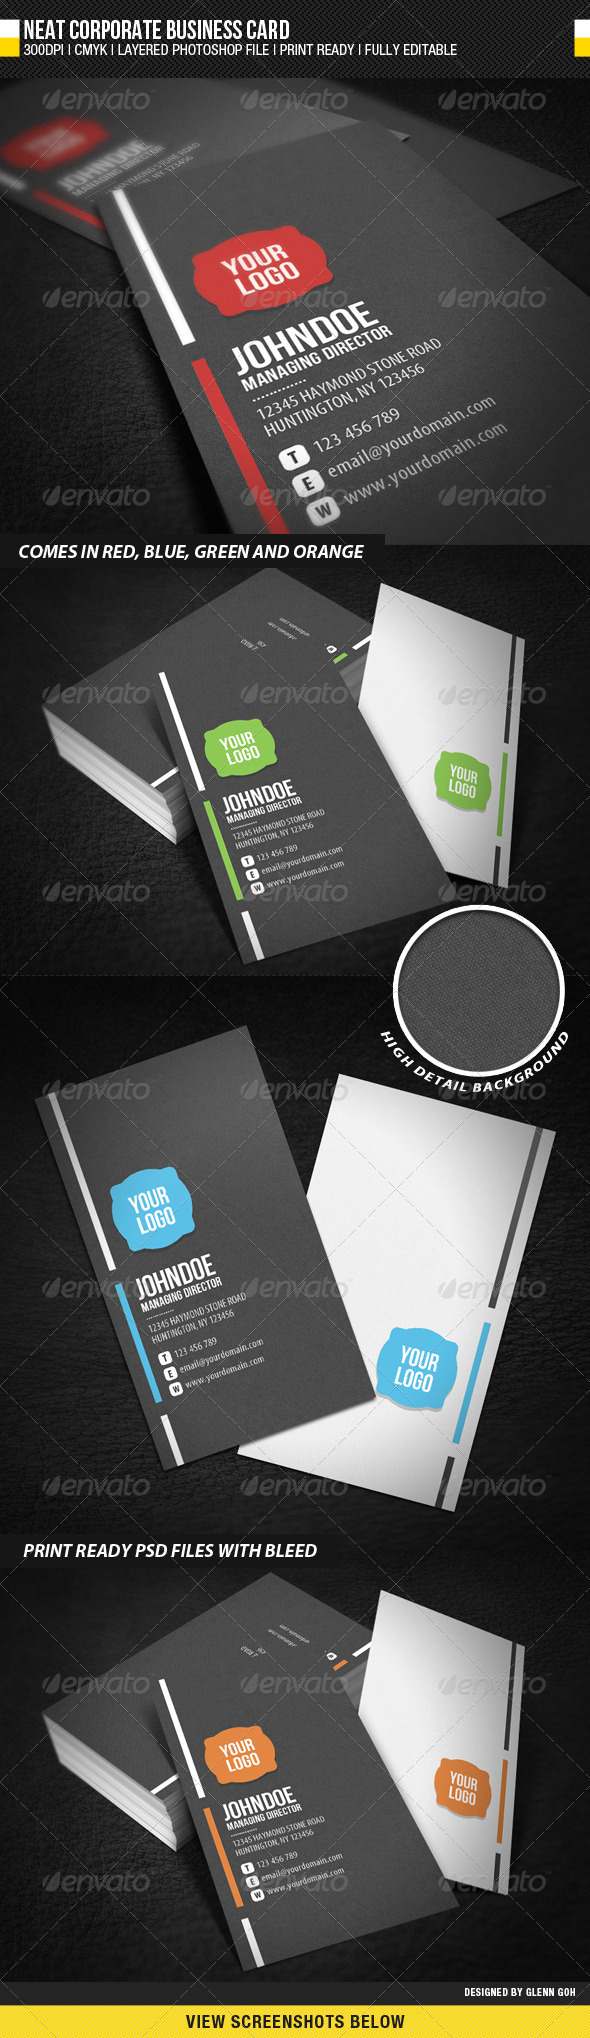 Neat Corporate Business Card - Corporate Business Cards